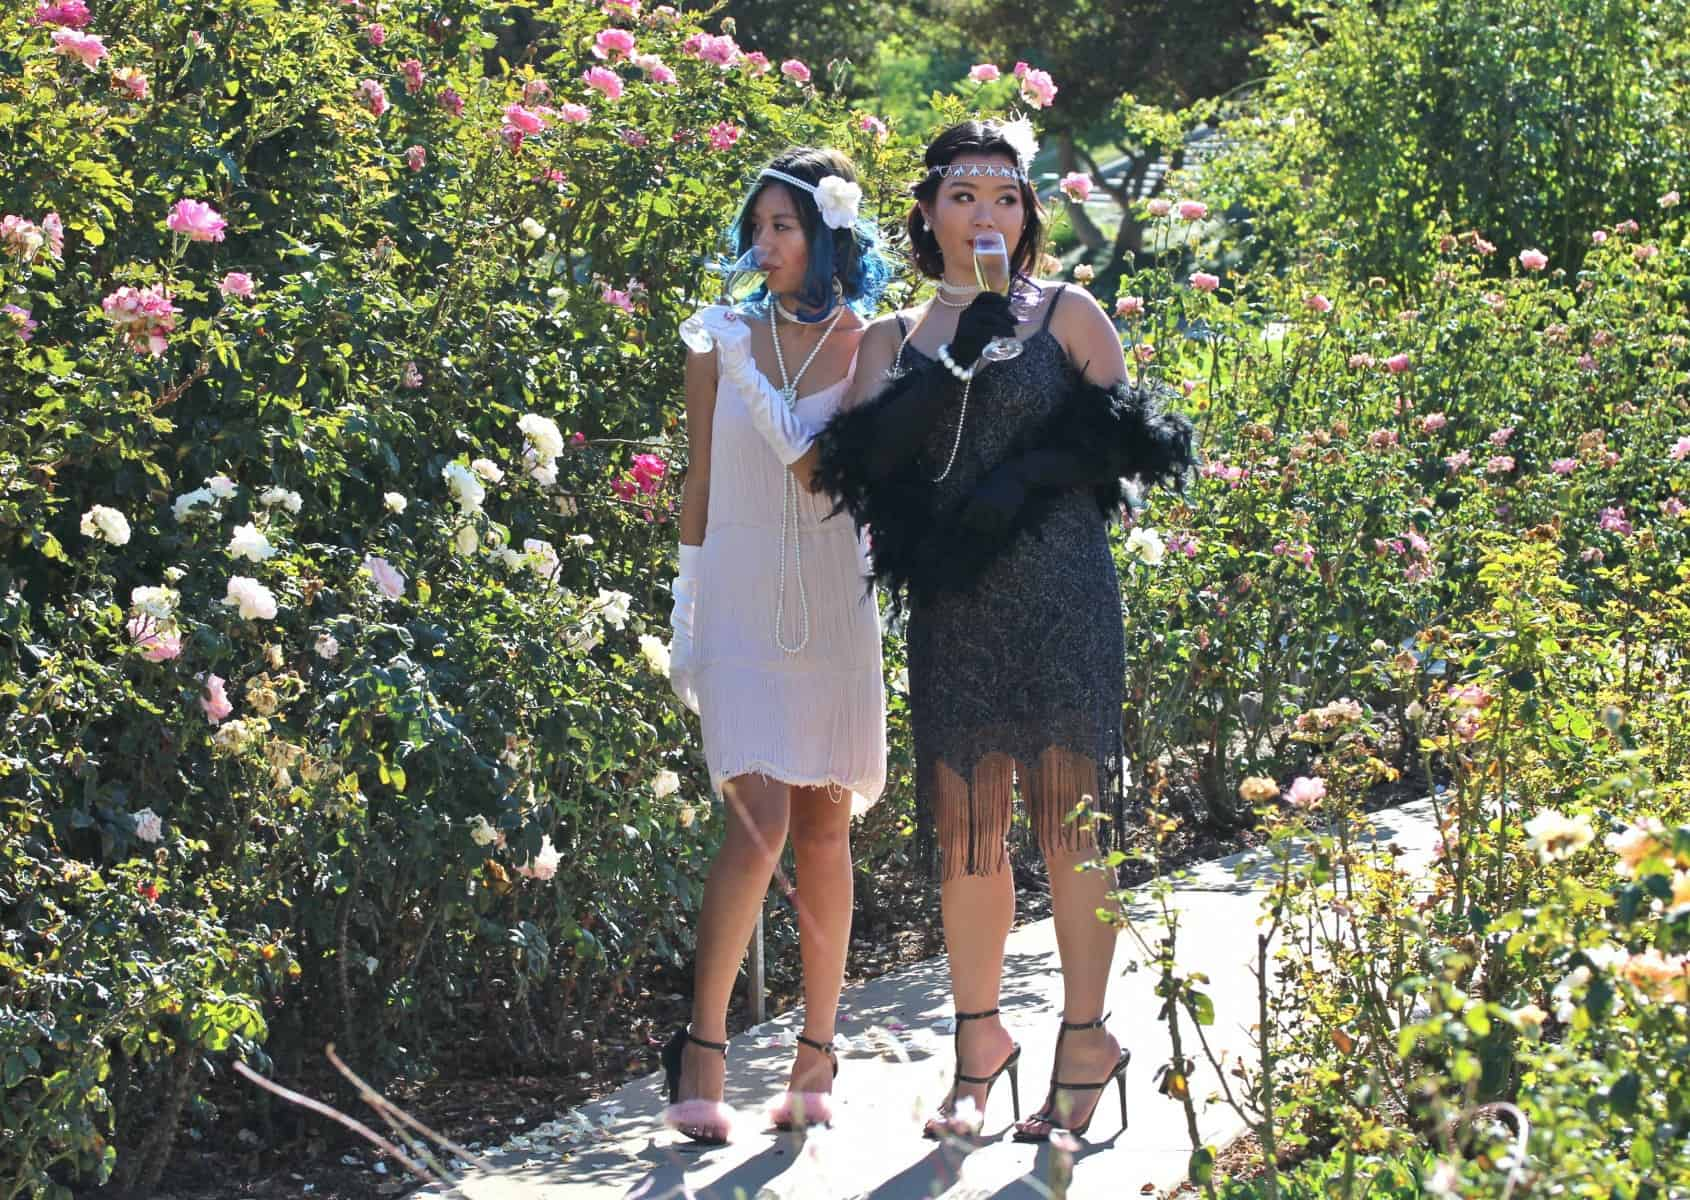 Halloween: Jazzing it Up to the 1920s